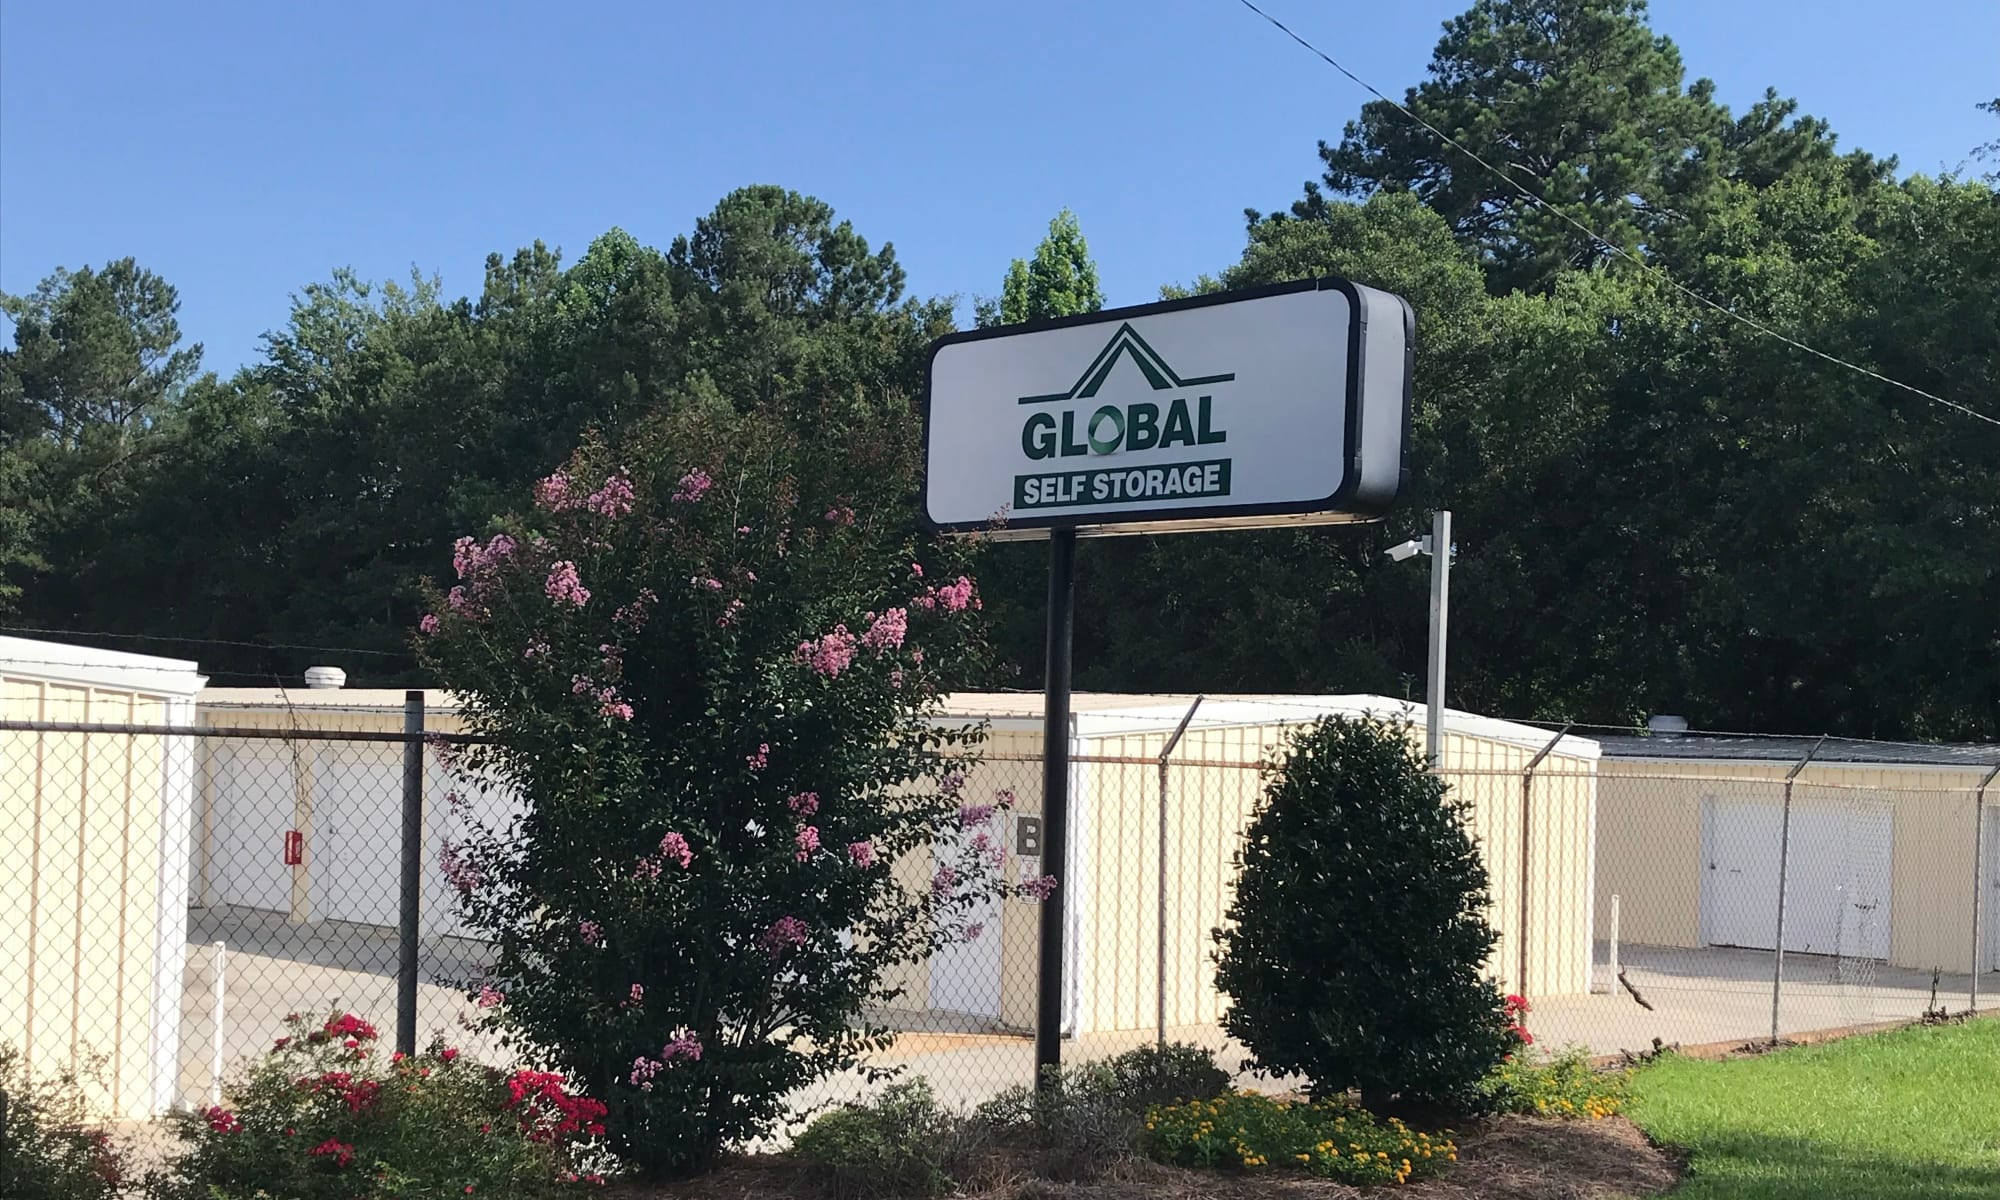 Self Storage available at Global Self Storage in Summerville, SC